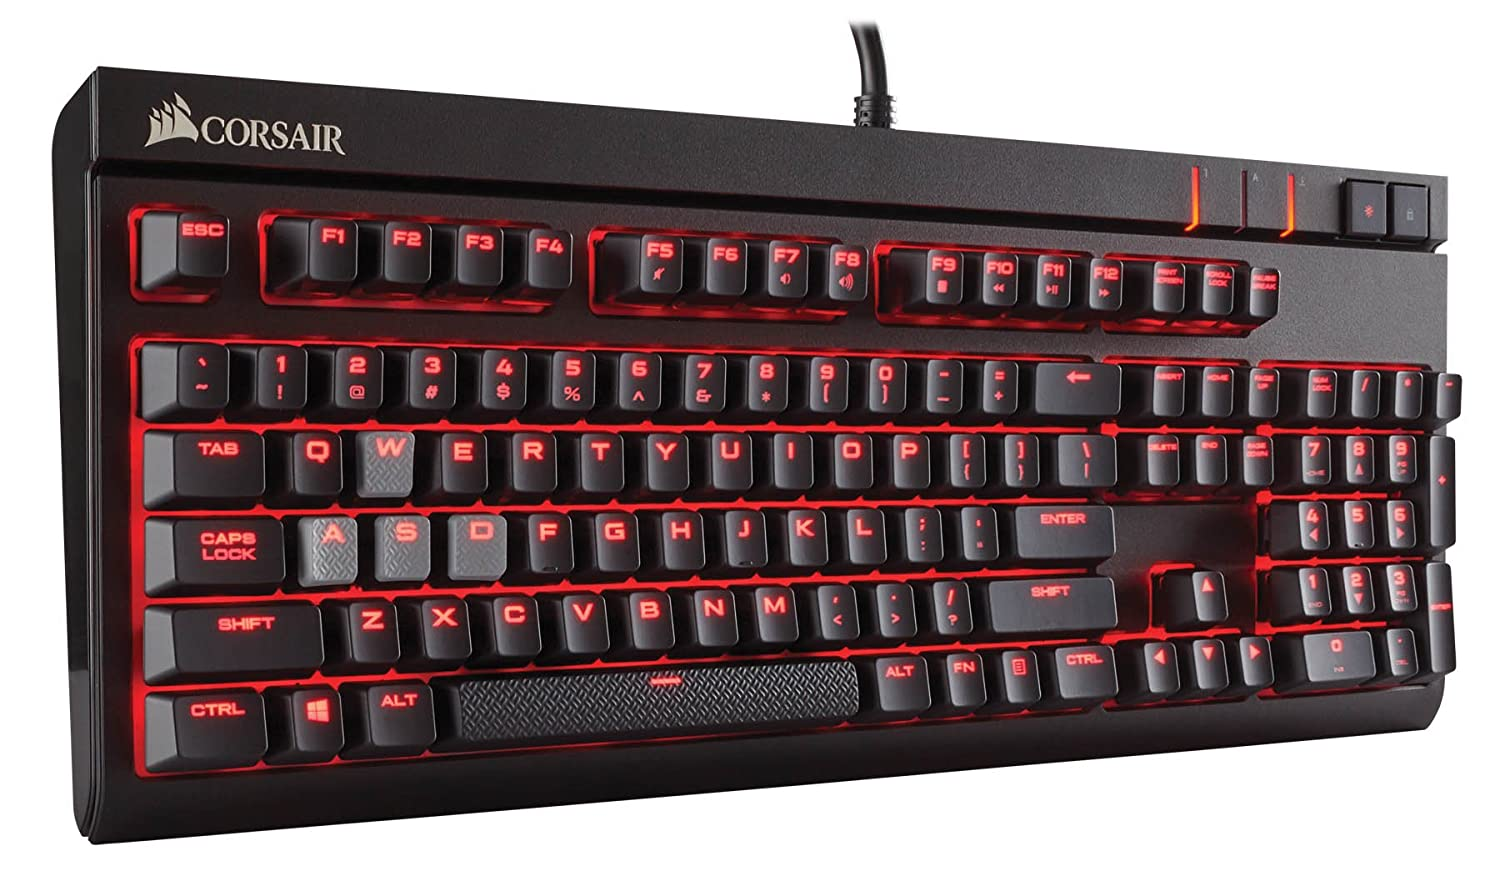 CORSAIR Strafe Mechanical Gaming Keyboard – Red LED Backlit – USB Passthrough – Tactile and Quiet – Cherry MX Brown Switch CH-9000092-NA